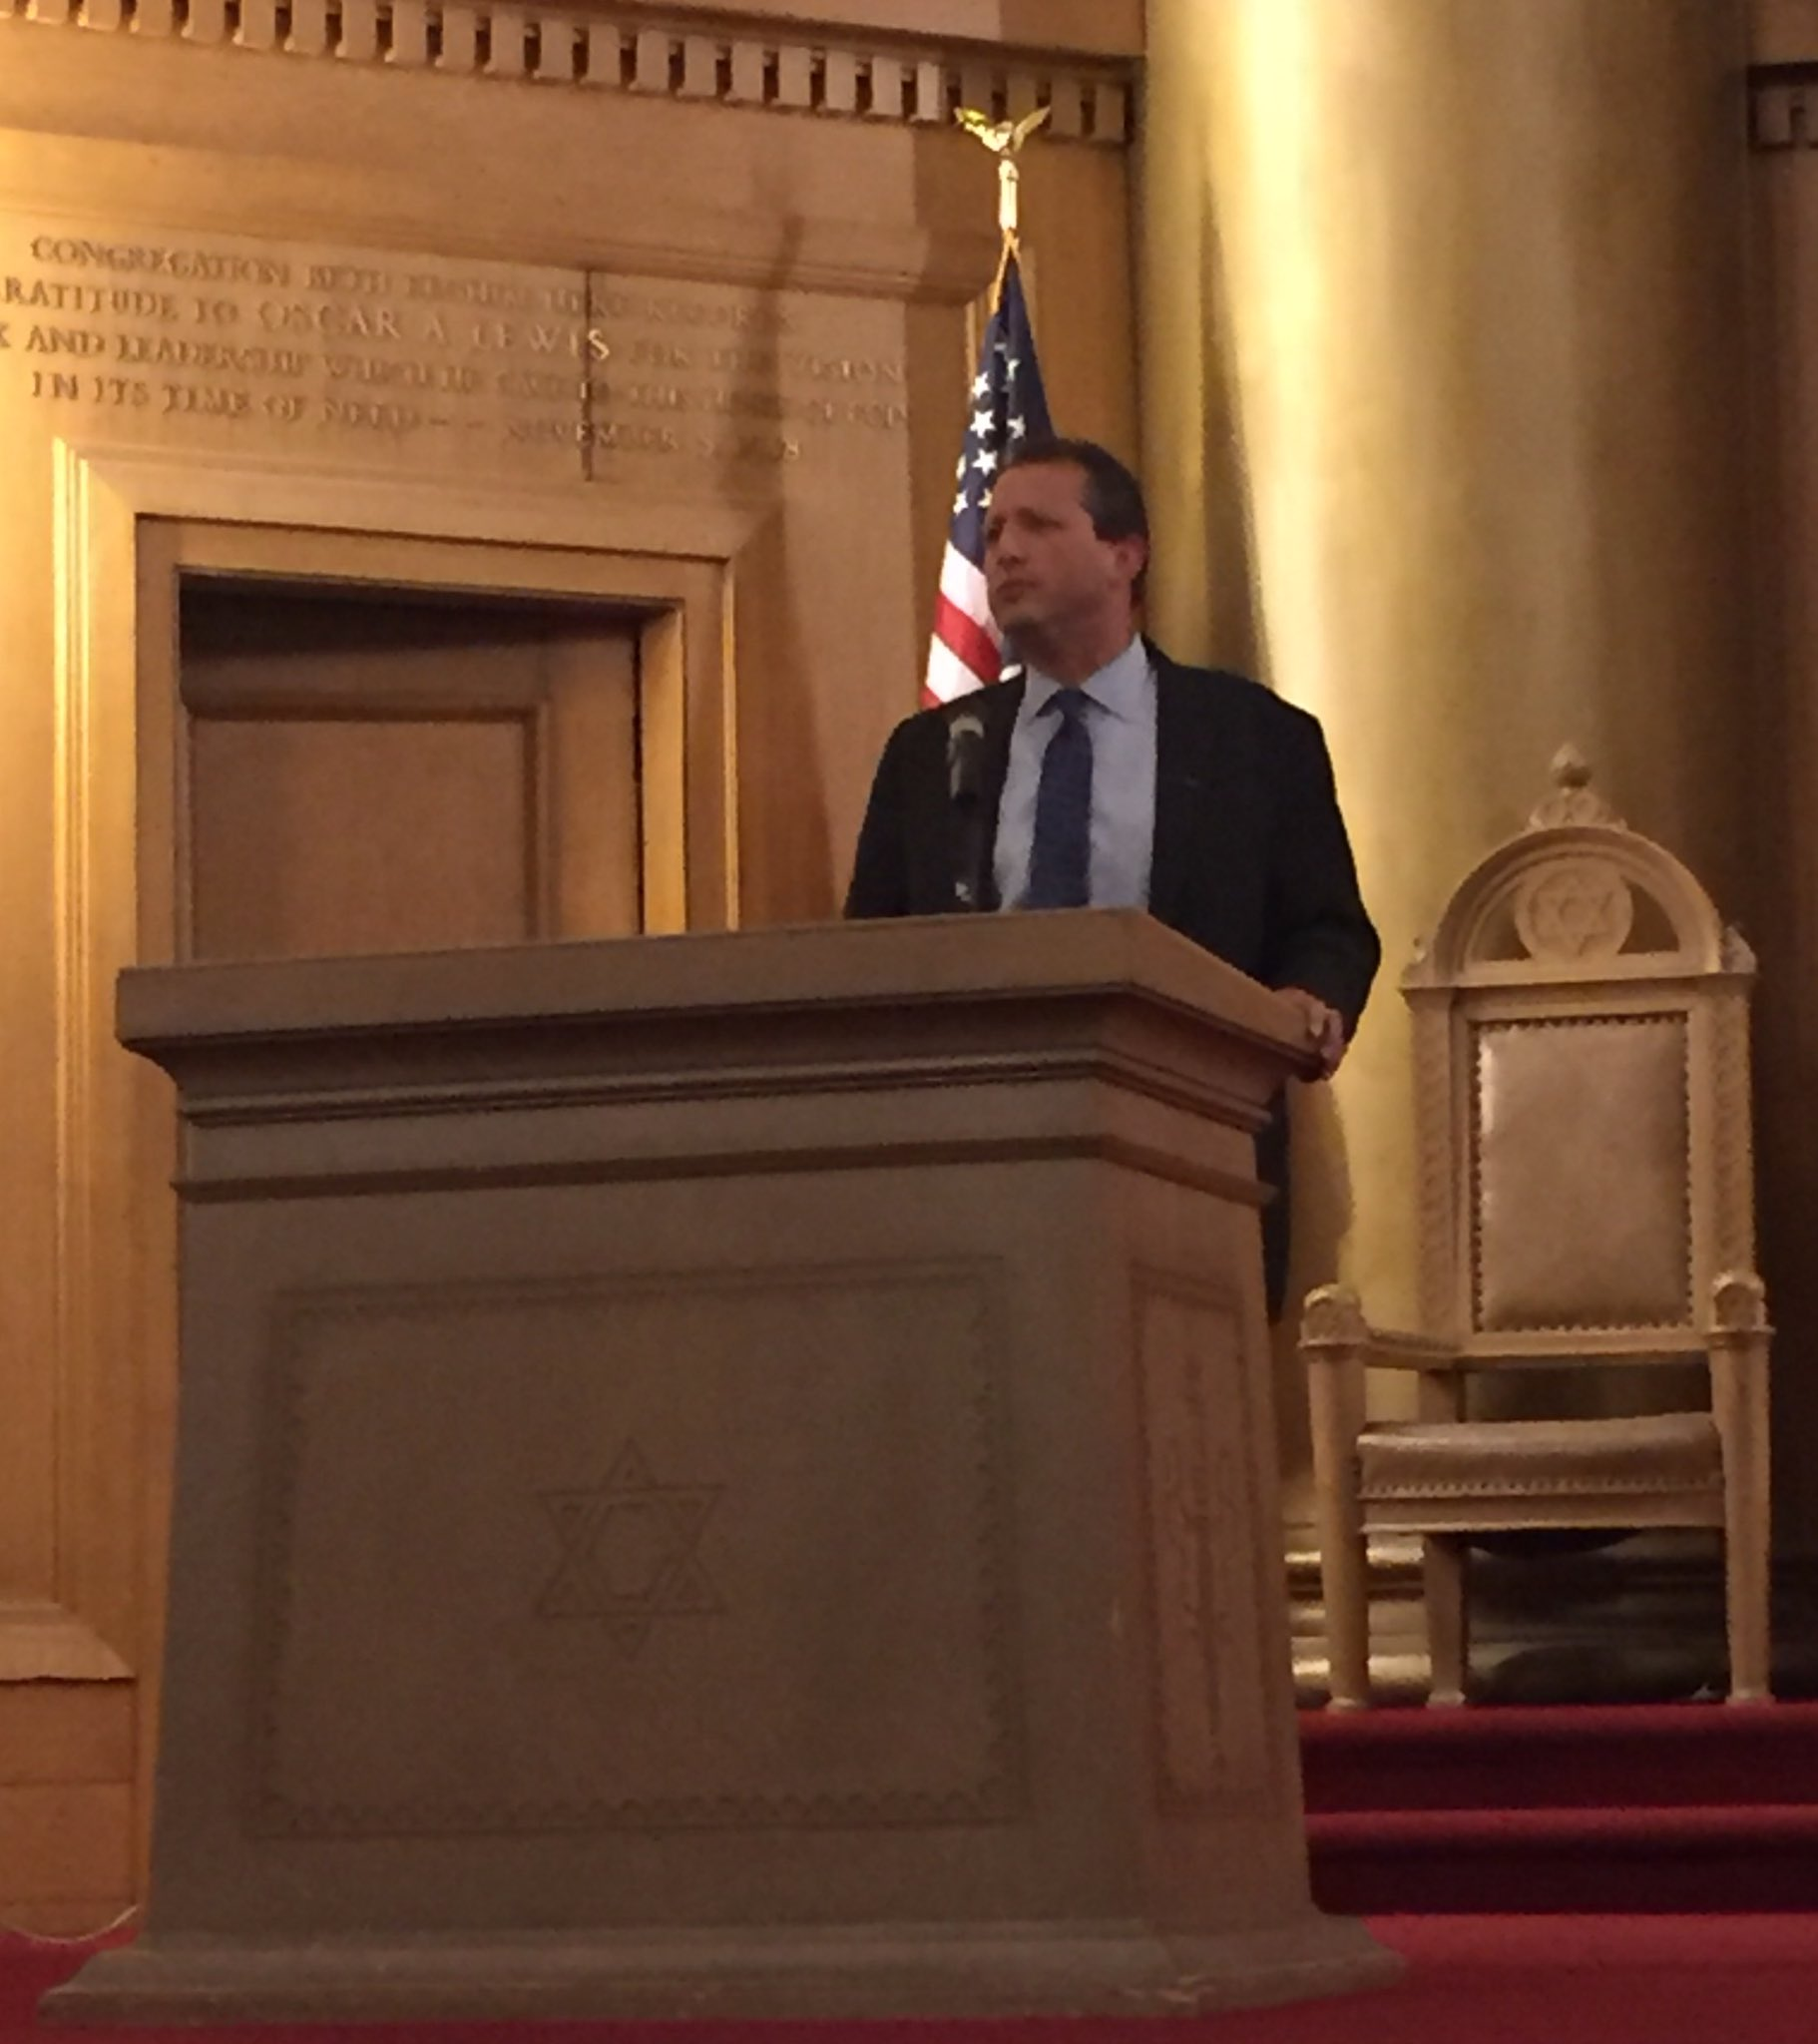 """We know it's American to welcome immigrants and refugees."" Thank you @bradlander for bringing your community together to #GetOrganizedBK. https://t.co/94uAIDXKGQ"